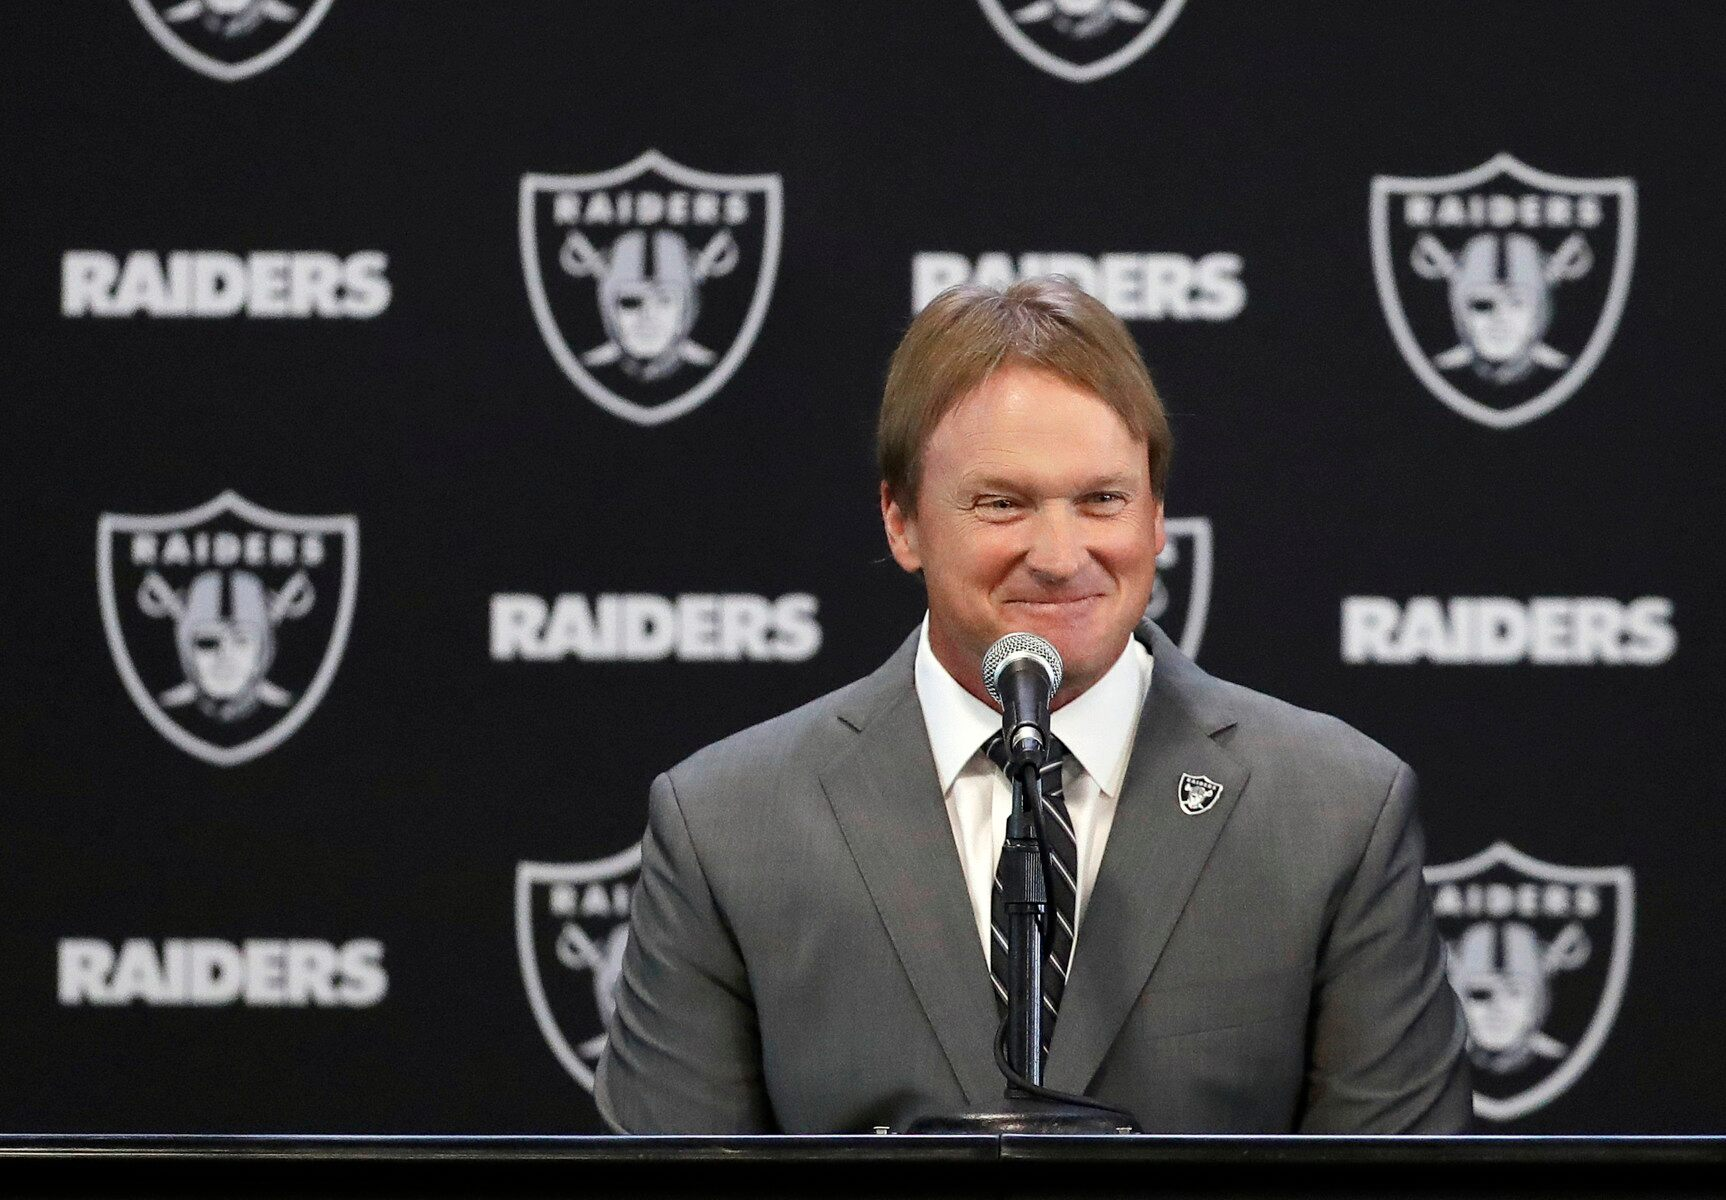 Oakland Raiders Announce Jon Gruden New Head Coach